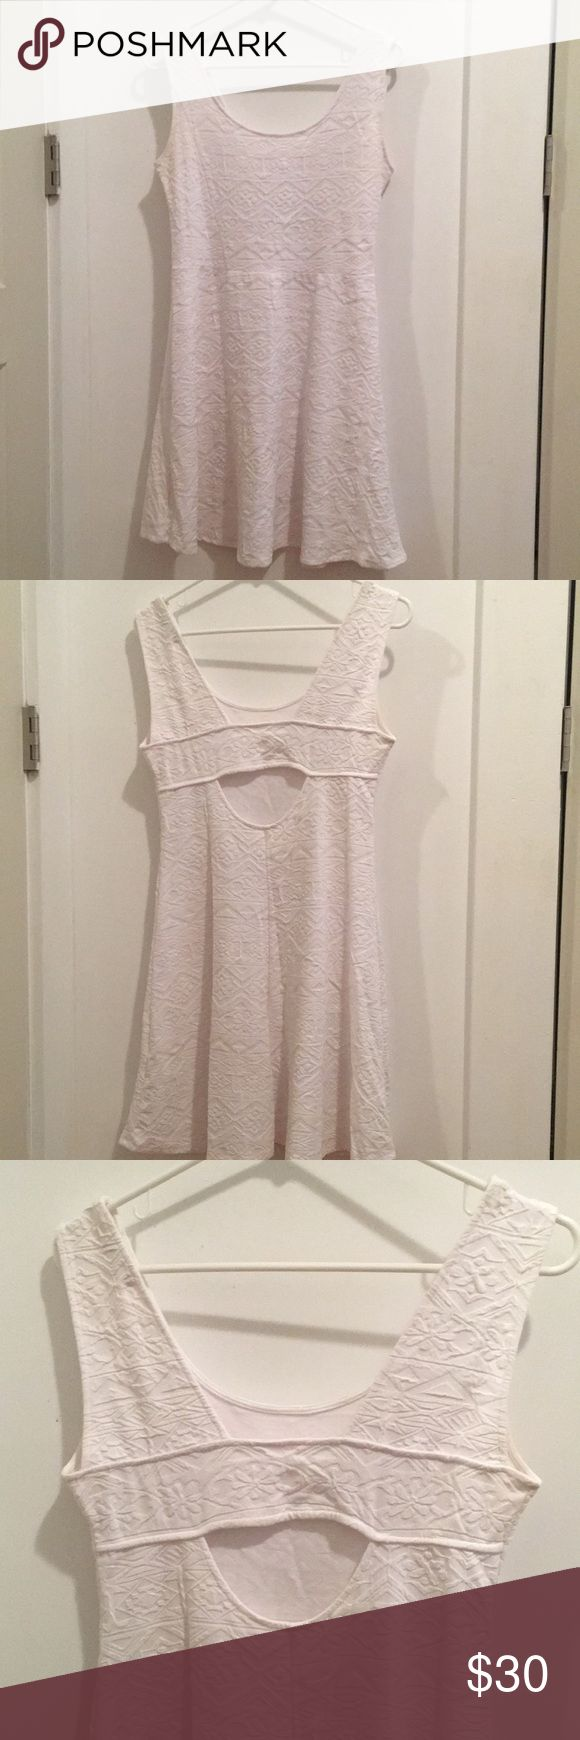 Pull and Bear White Textured Print Dress This pull and bear dress is extremely comfortable and a perfect way to dress up an every-day look. The textured print makes this dress a little more interesting and the open back a nice added bonus. (Almost new. Only worn twice.) Pull&Bear Dresses